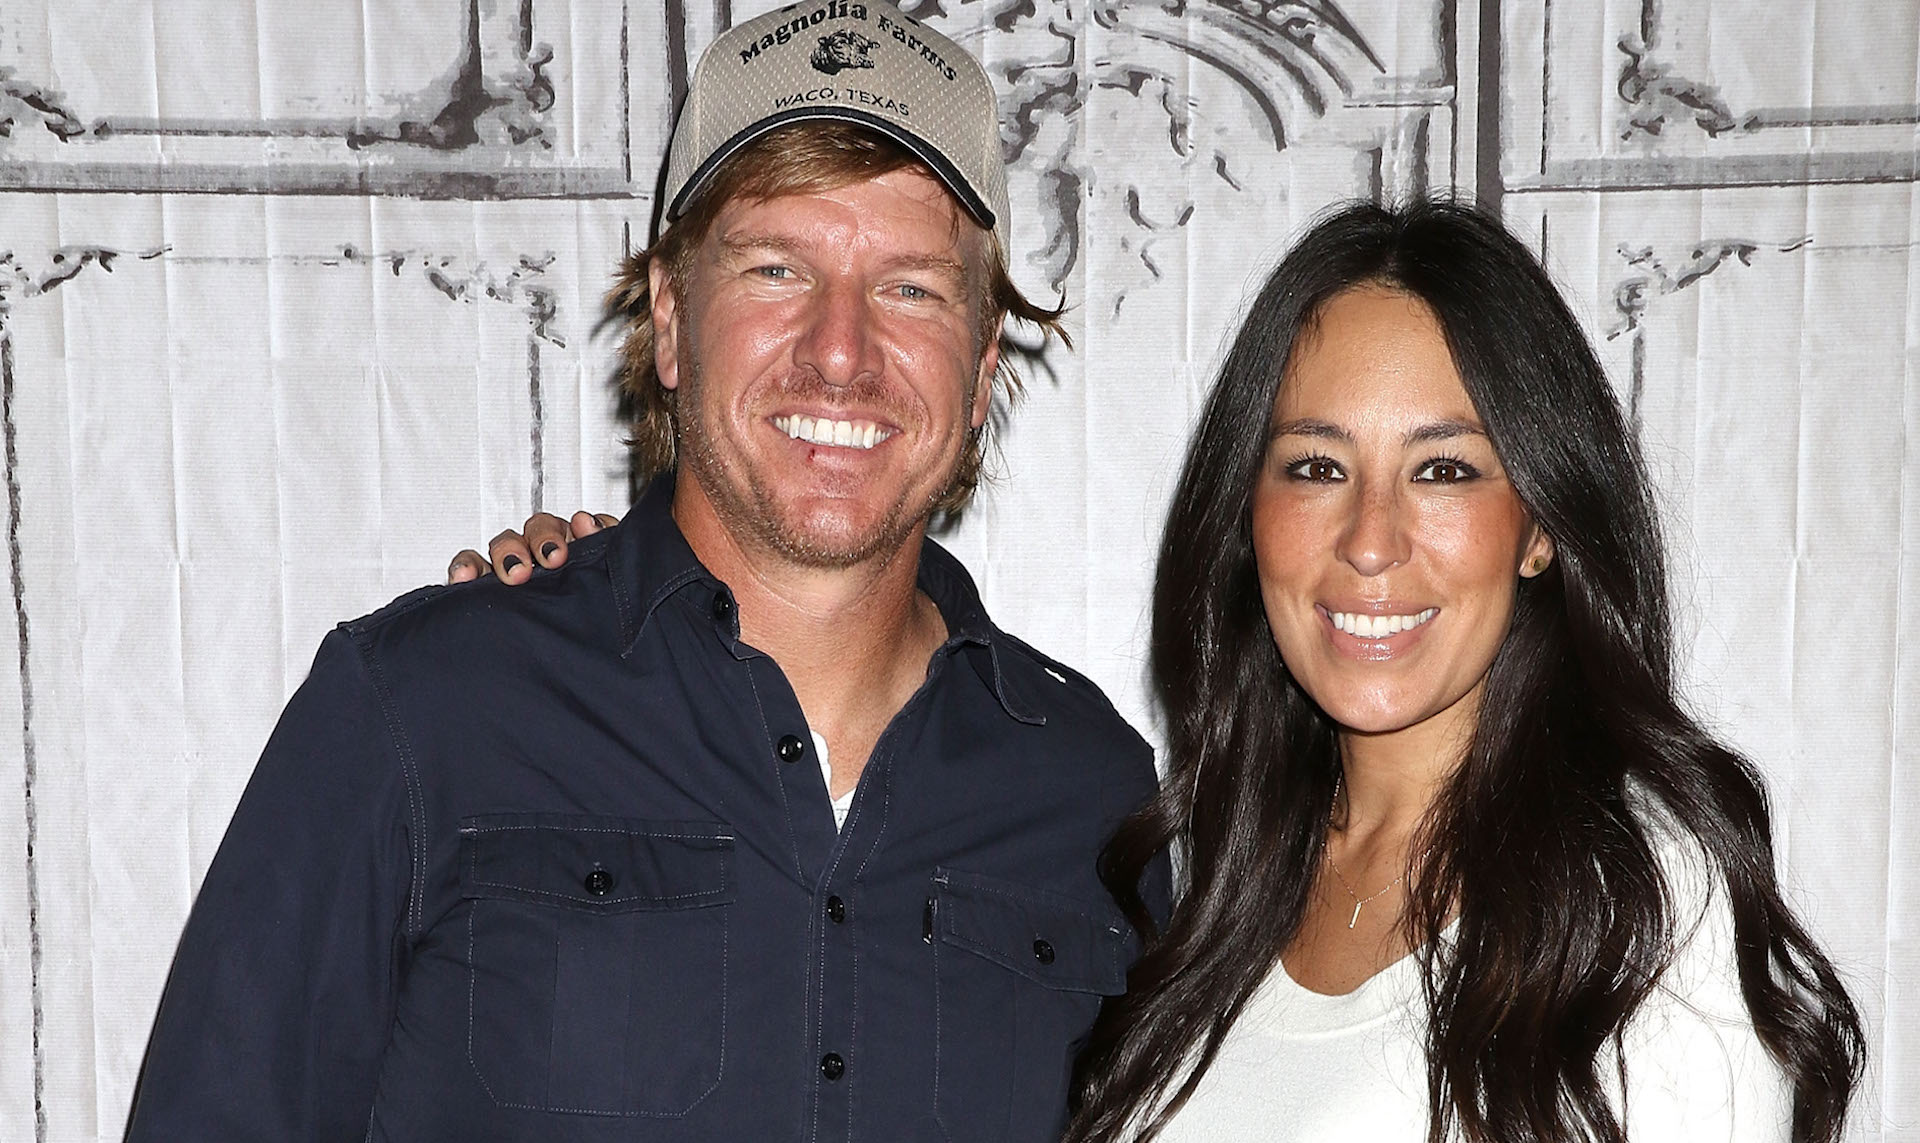 Before Meeting Joanna, Chip Gaines Says He Was Hell-Bent on Making Another Woman His Wife forecast